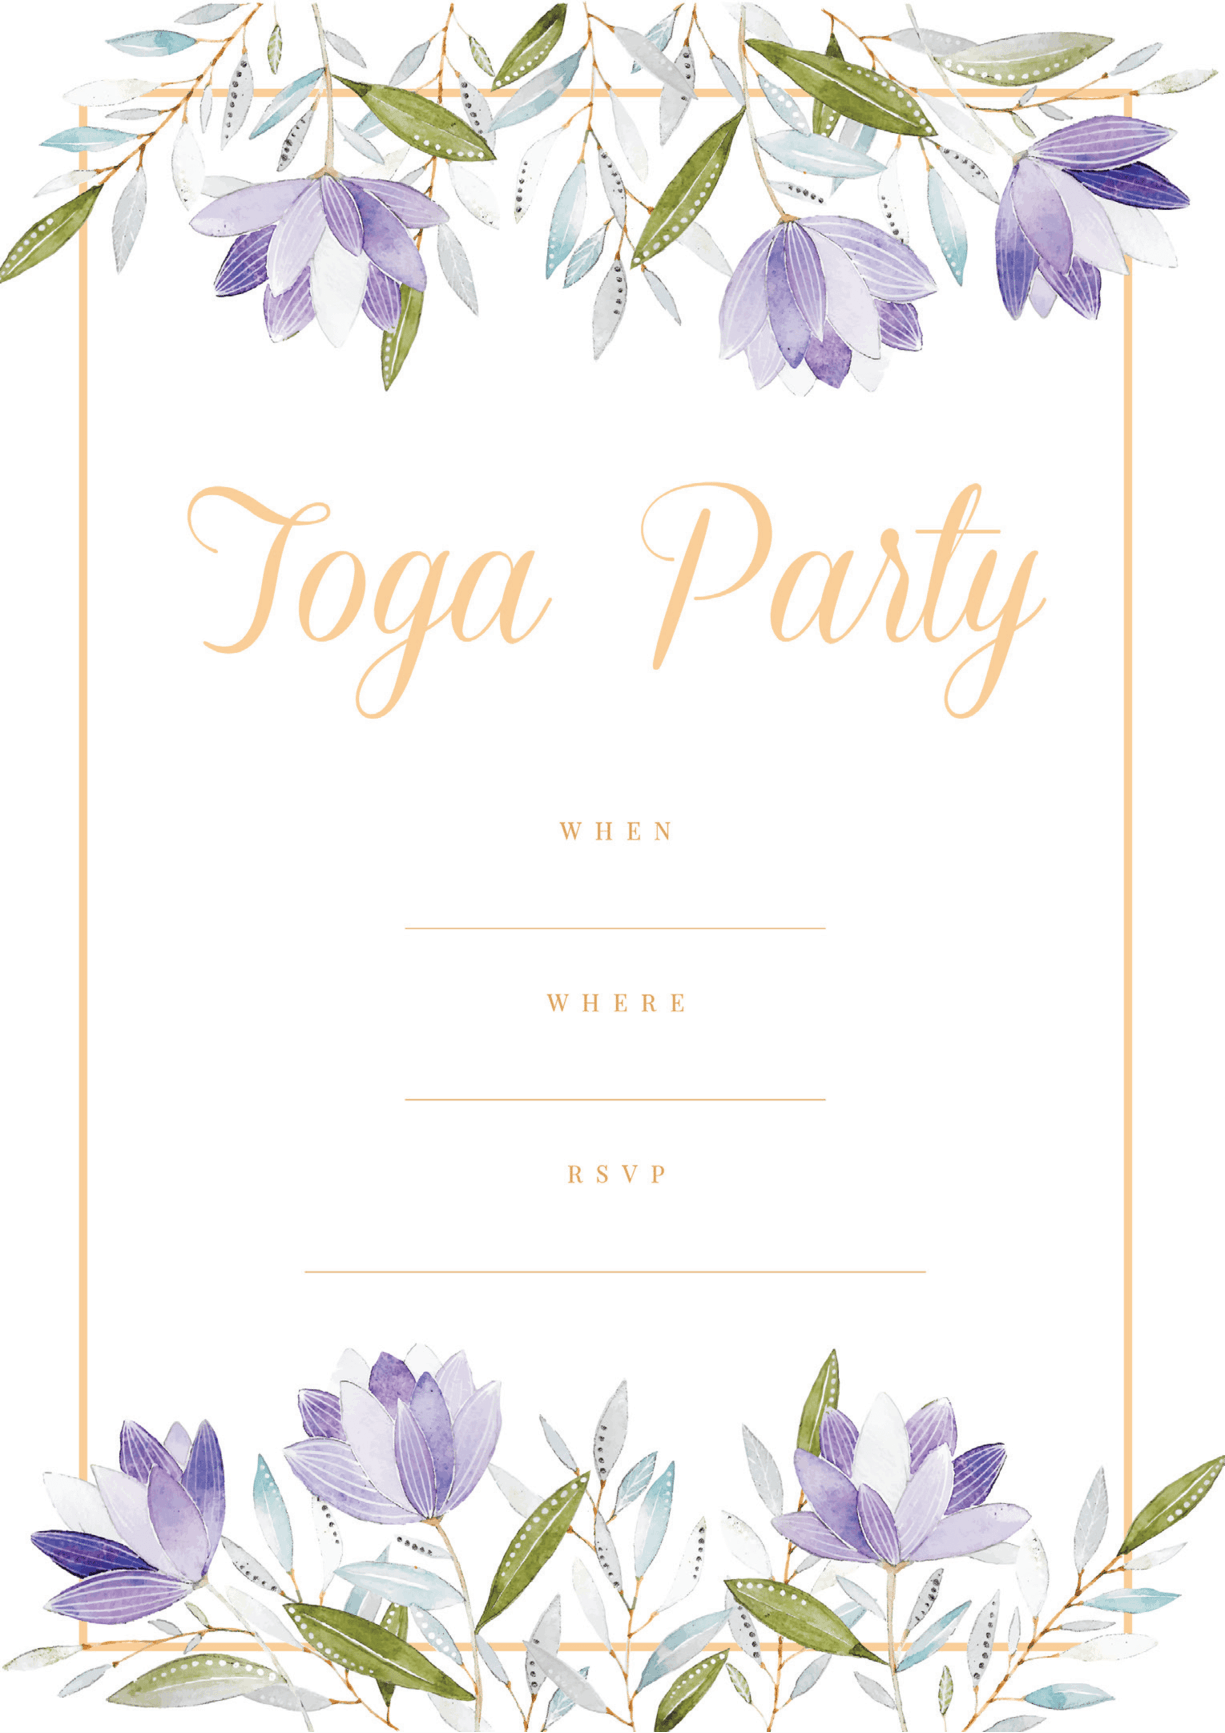 Toga Party Invitations